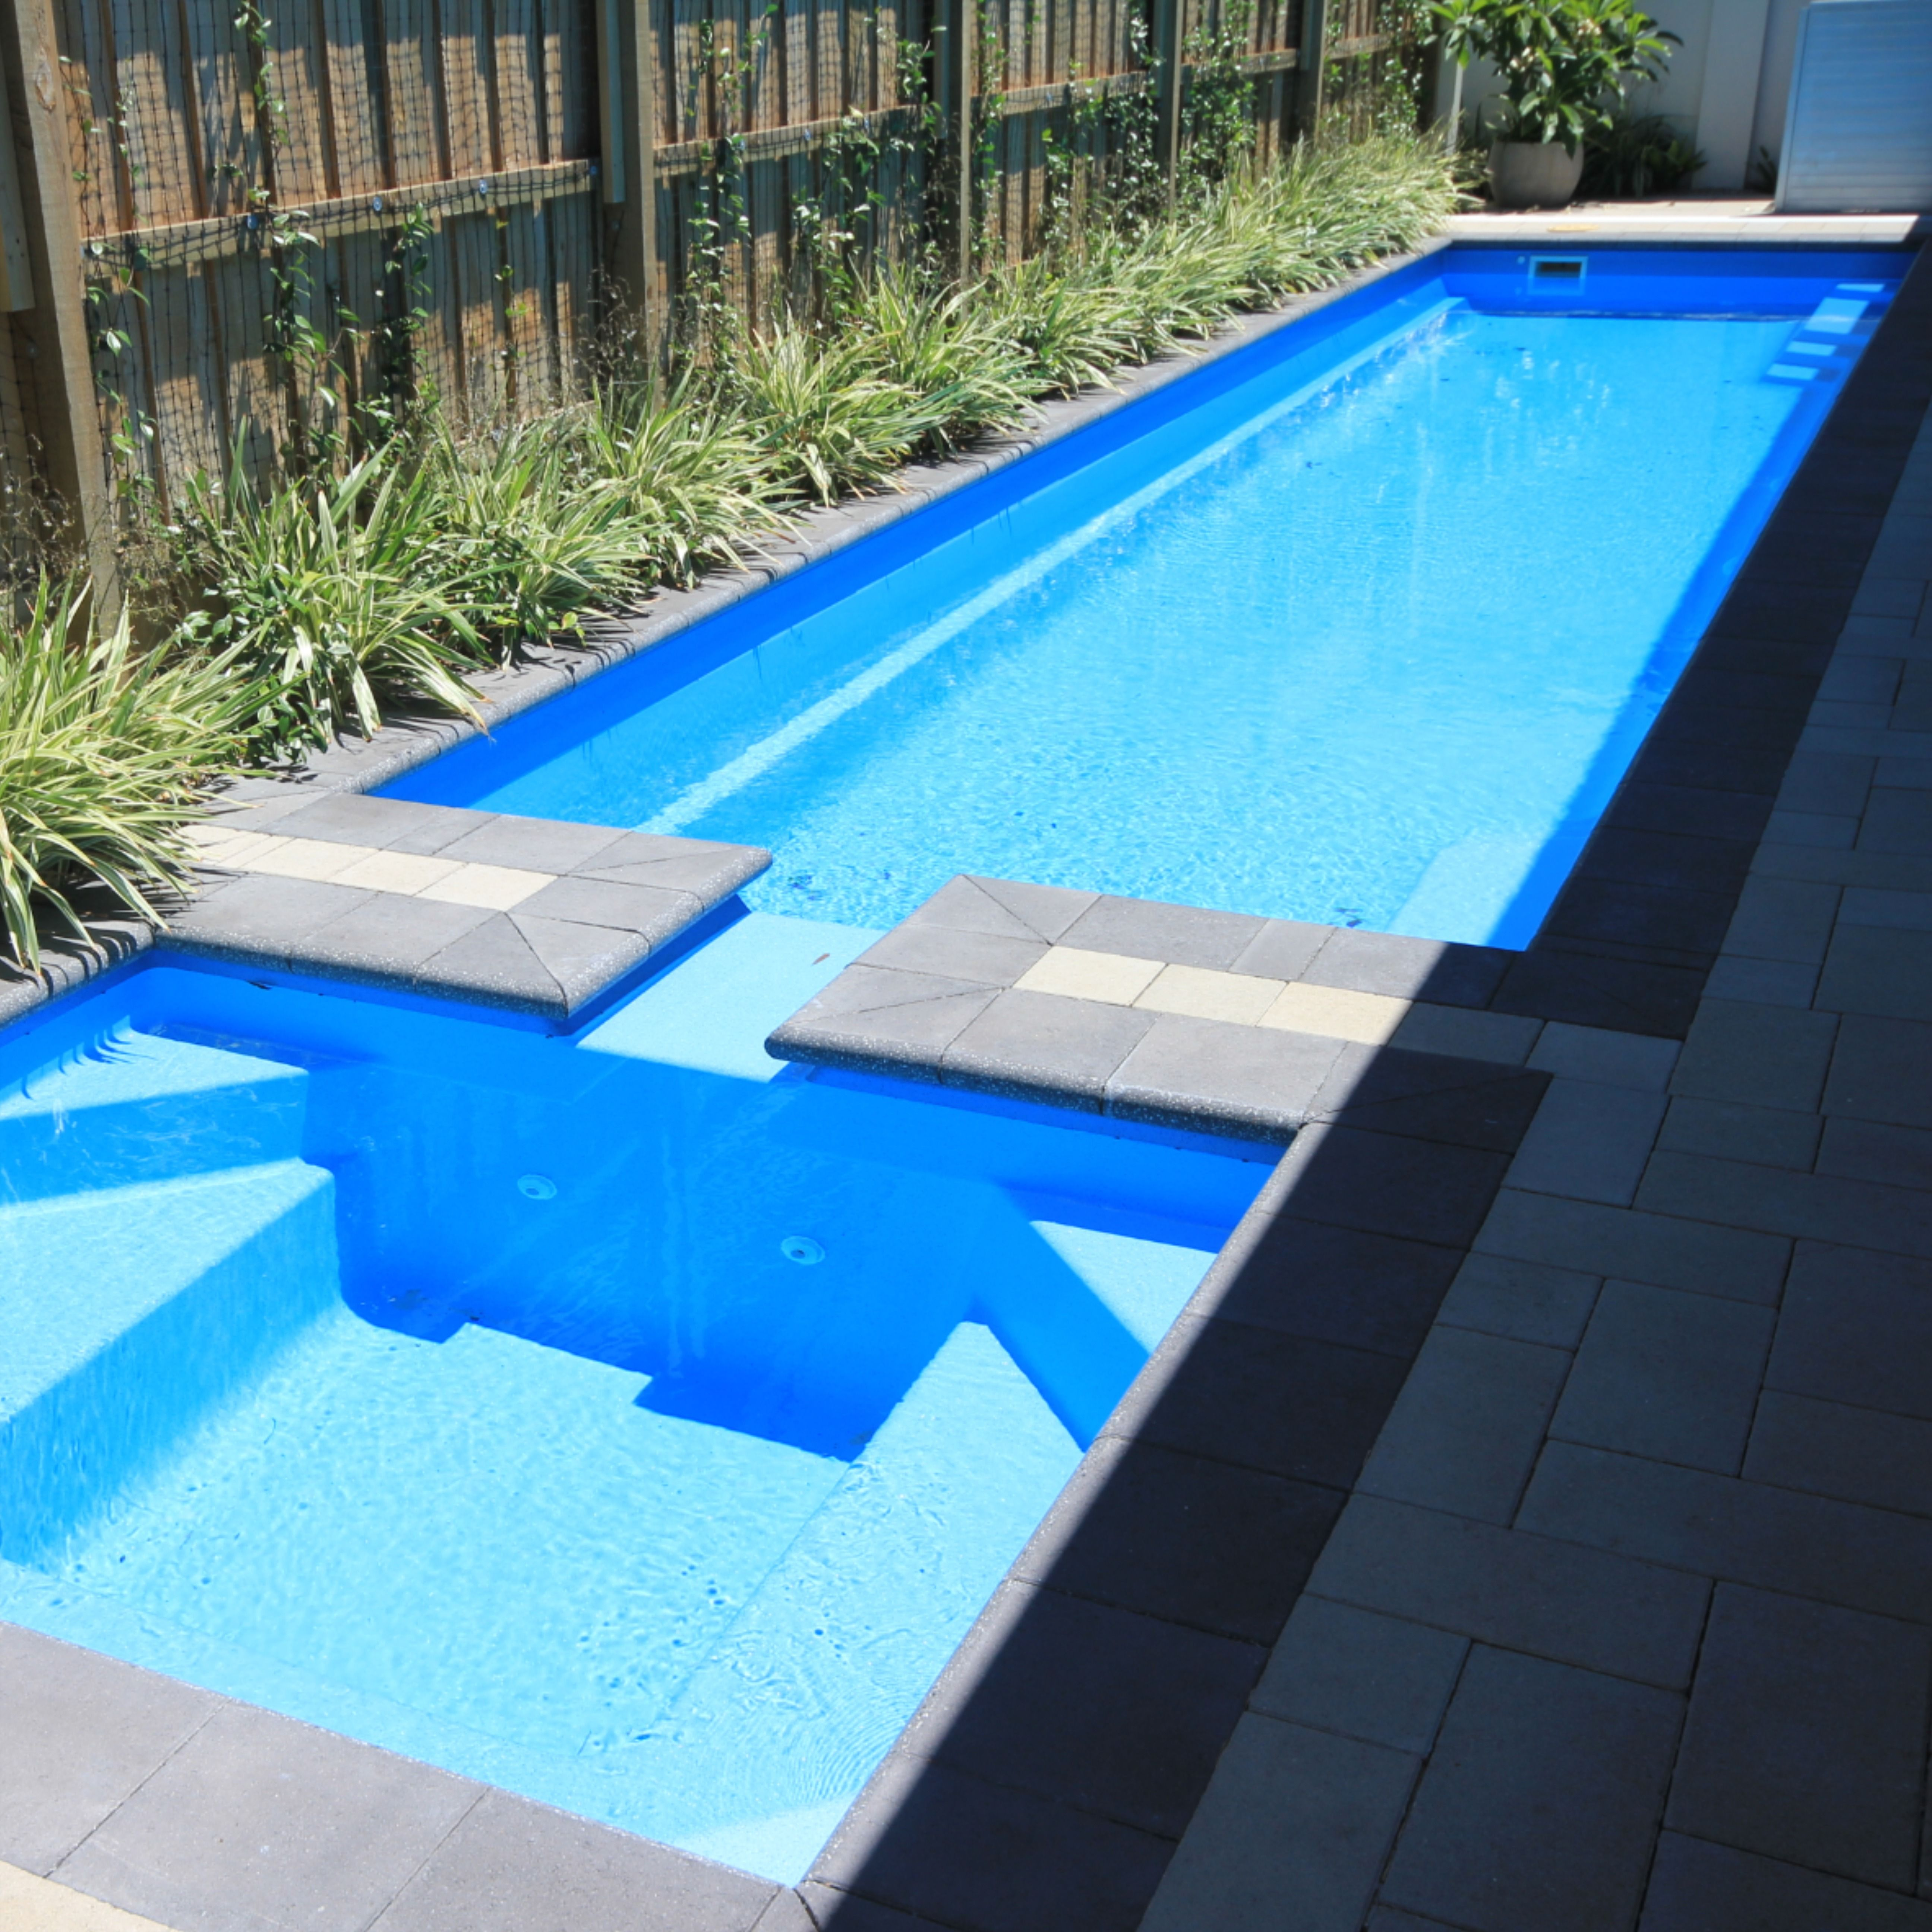 Rectangular Swimming Pool With Spillover Spa Lap Pools Backyard Rectangular Swimming Pools Fiberglass Swimming Pools